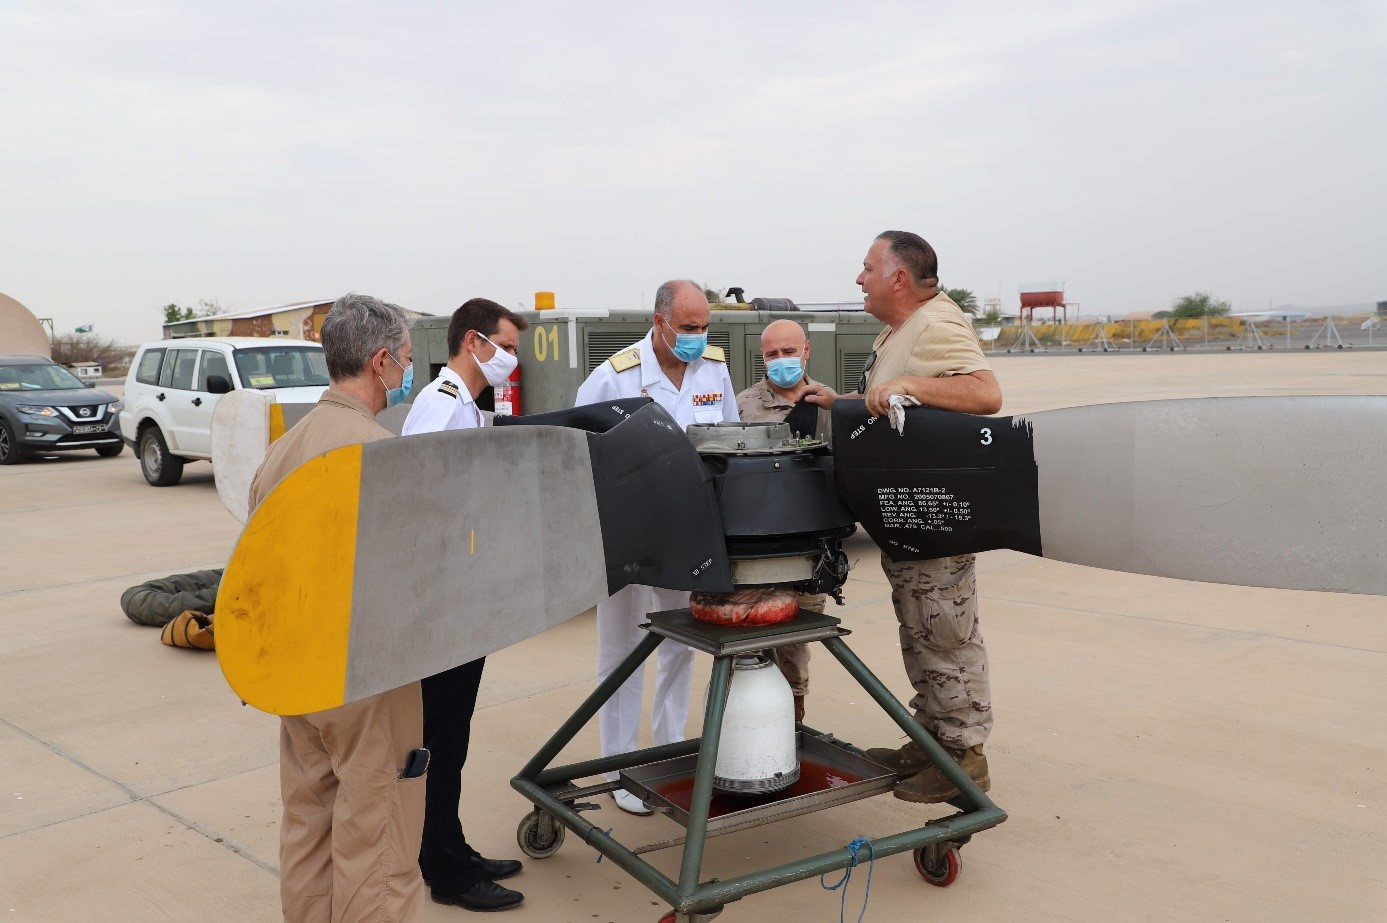 Rear Admiral Villanueva visits 'Orion' Air Detachment in Djibouti